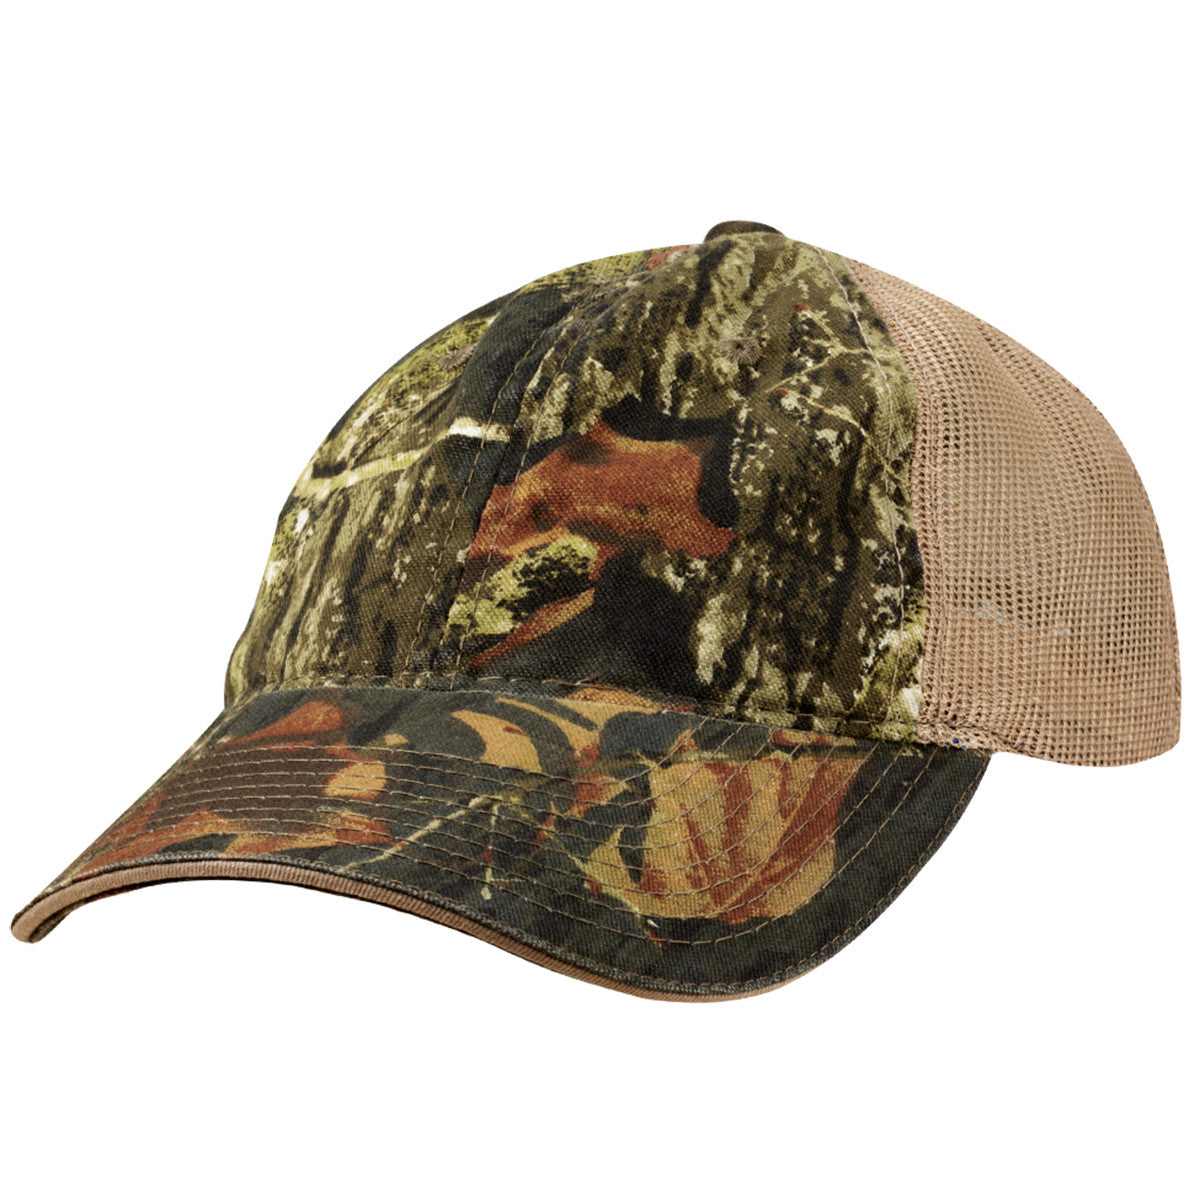 Outdoor Cap Washed Brushed Mesh Back Hat – Just Say Hats e2ab866eab2a